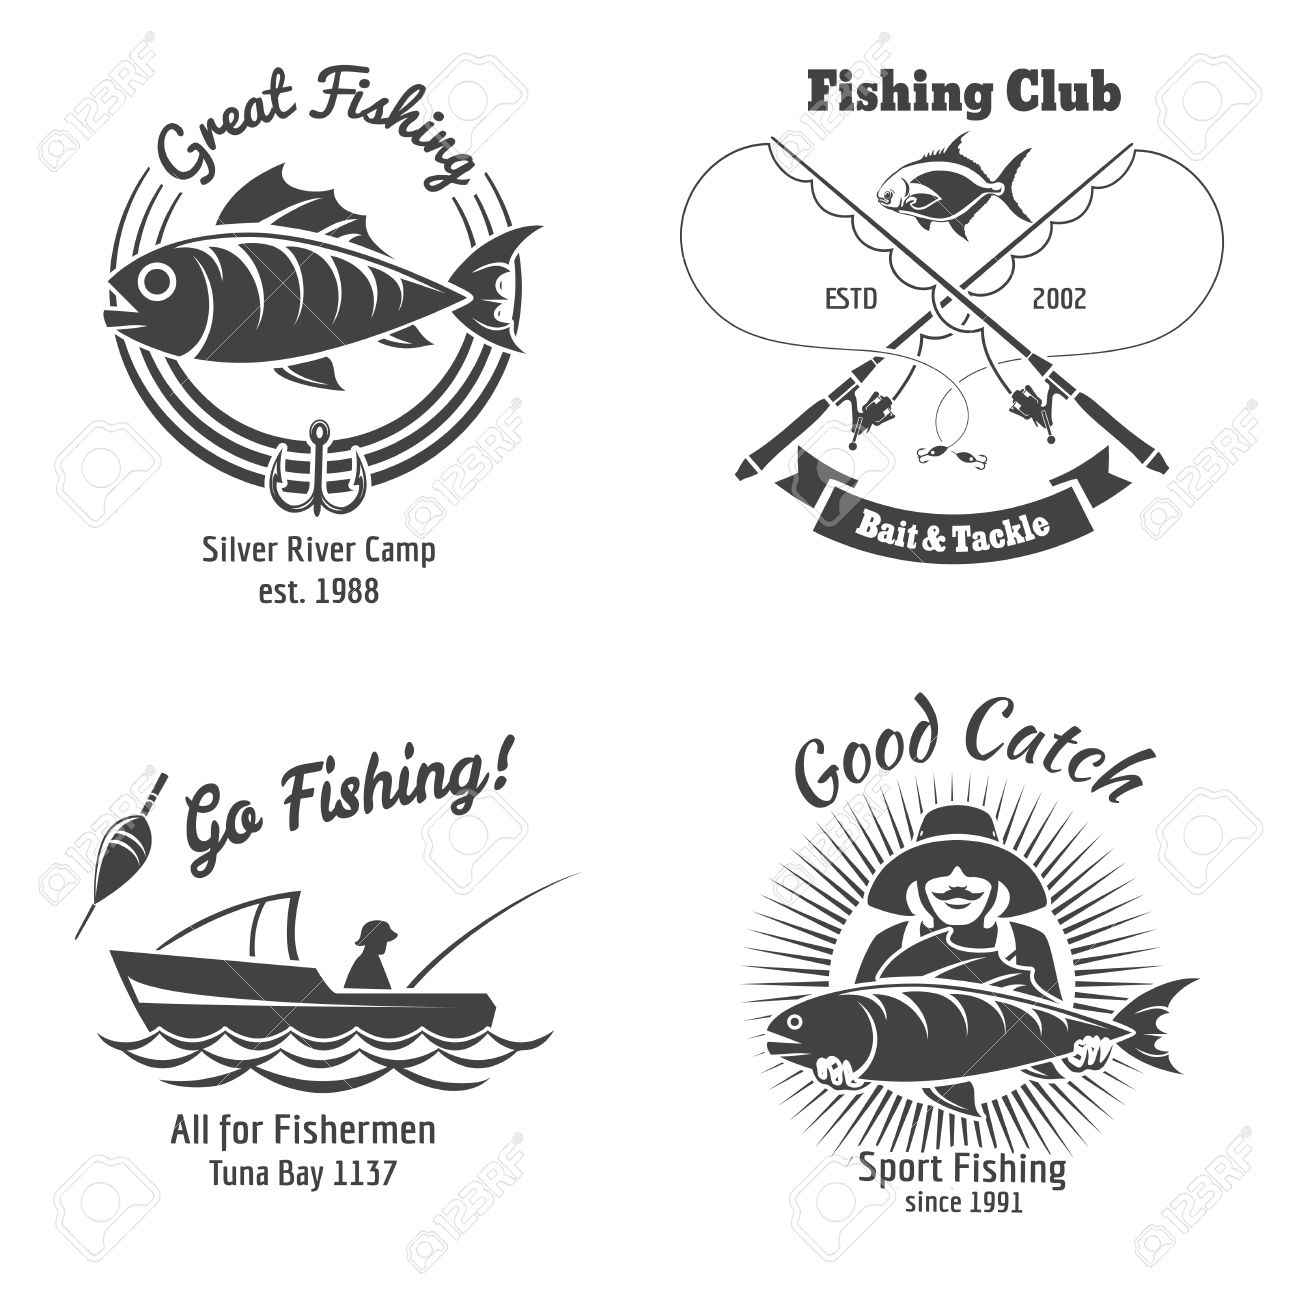 Fishing logo and emblems vintage vector set. Stamp and fish, sign and sticker, food animal, vector illustration - 44250522